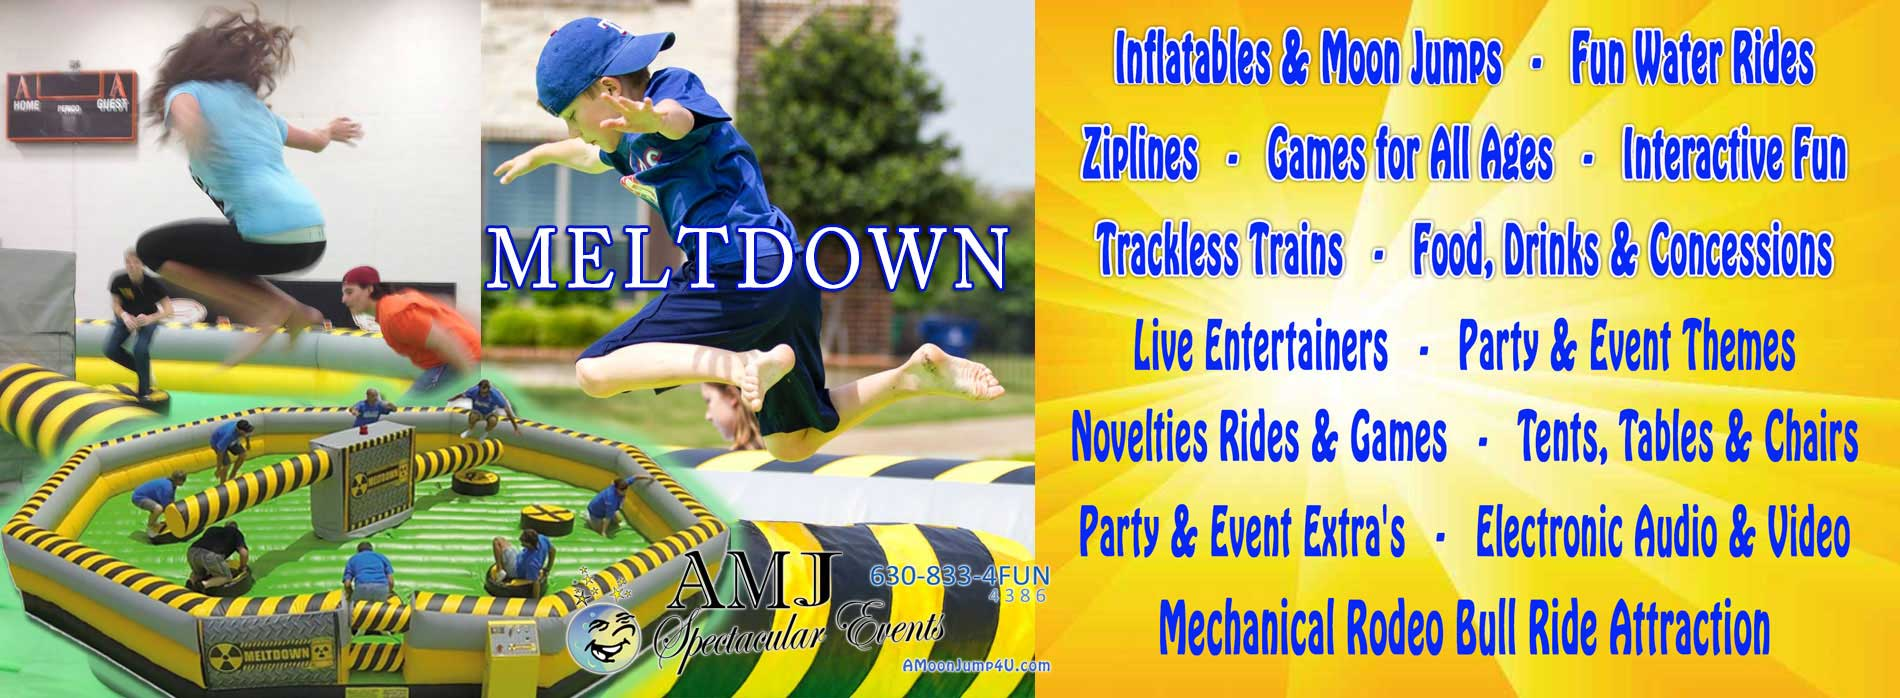 Meltdown Inflatable Rental From Wipeout Chicago Illinois